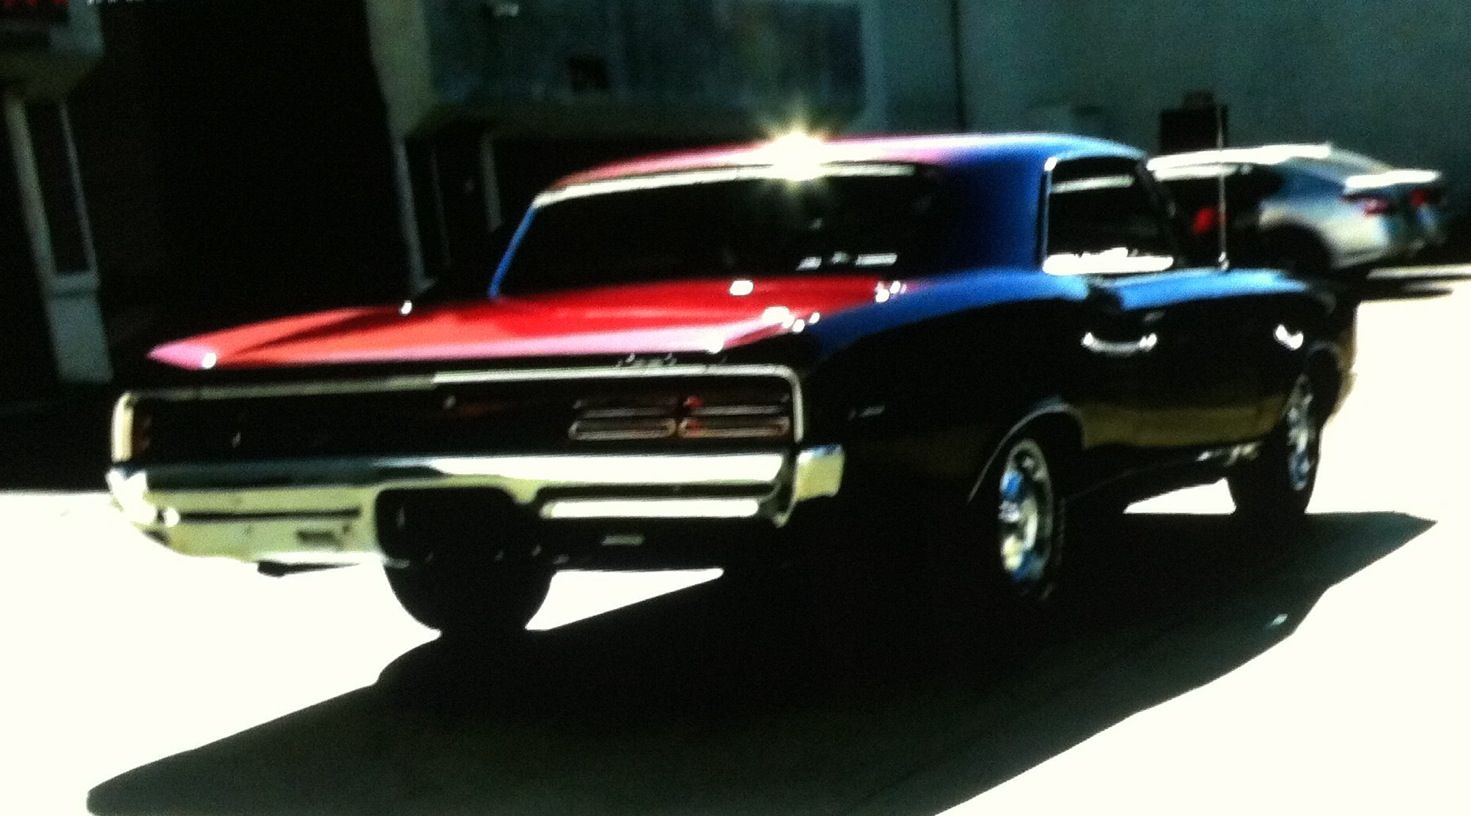 Gto Counting Cars Gto Pinterest Cars Counting Cars And